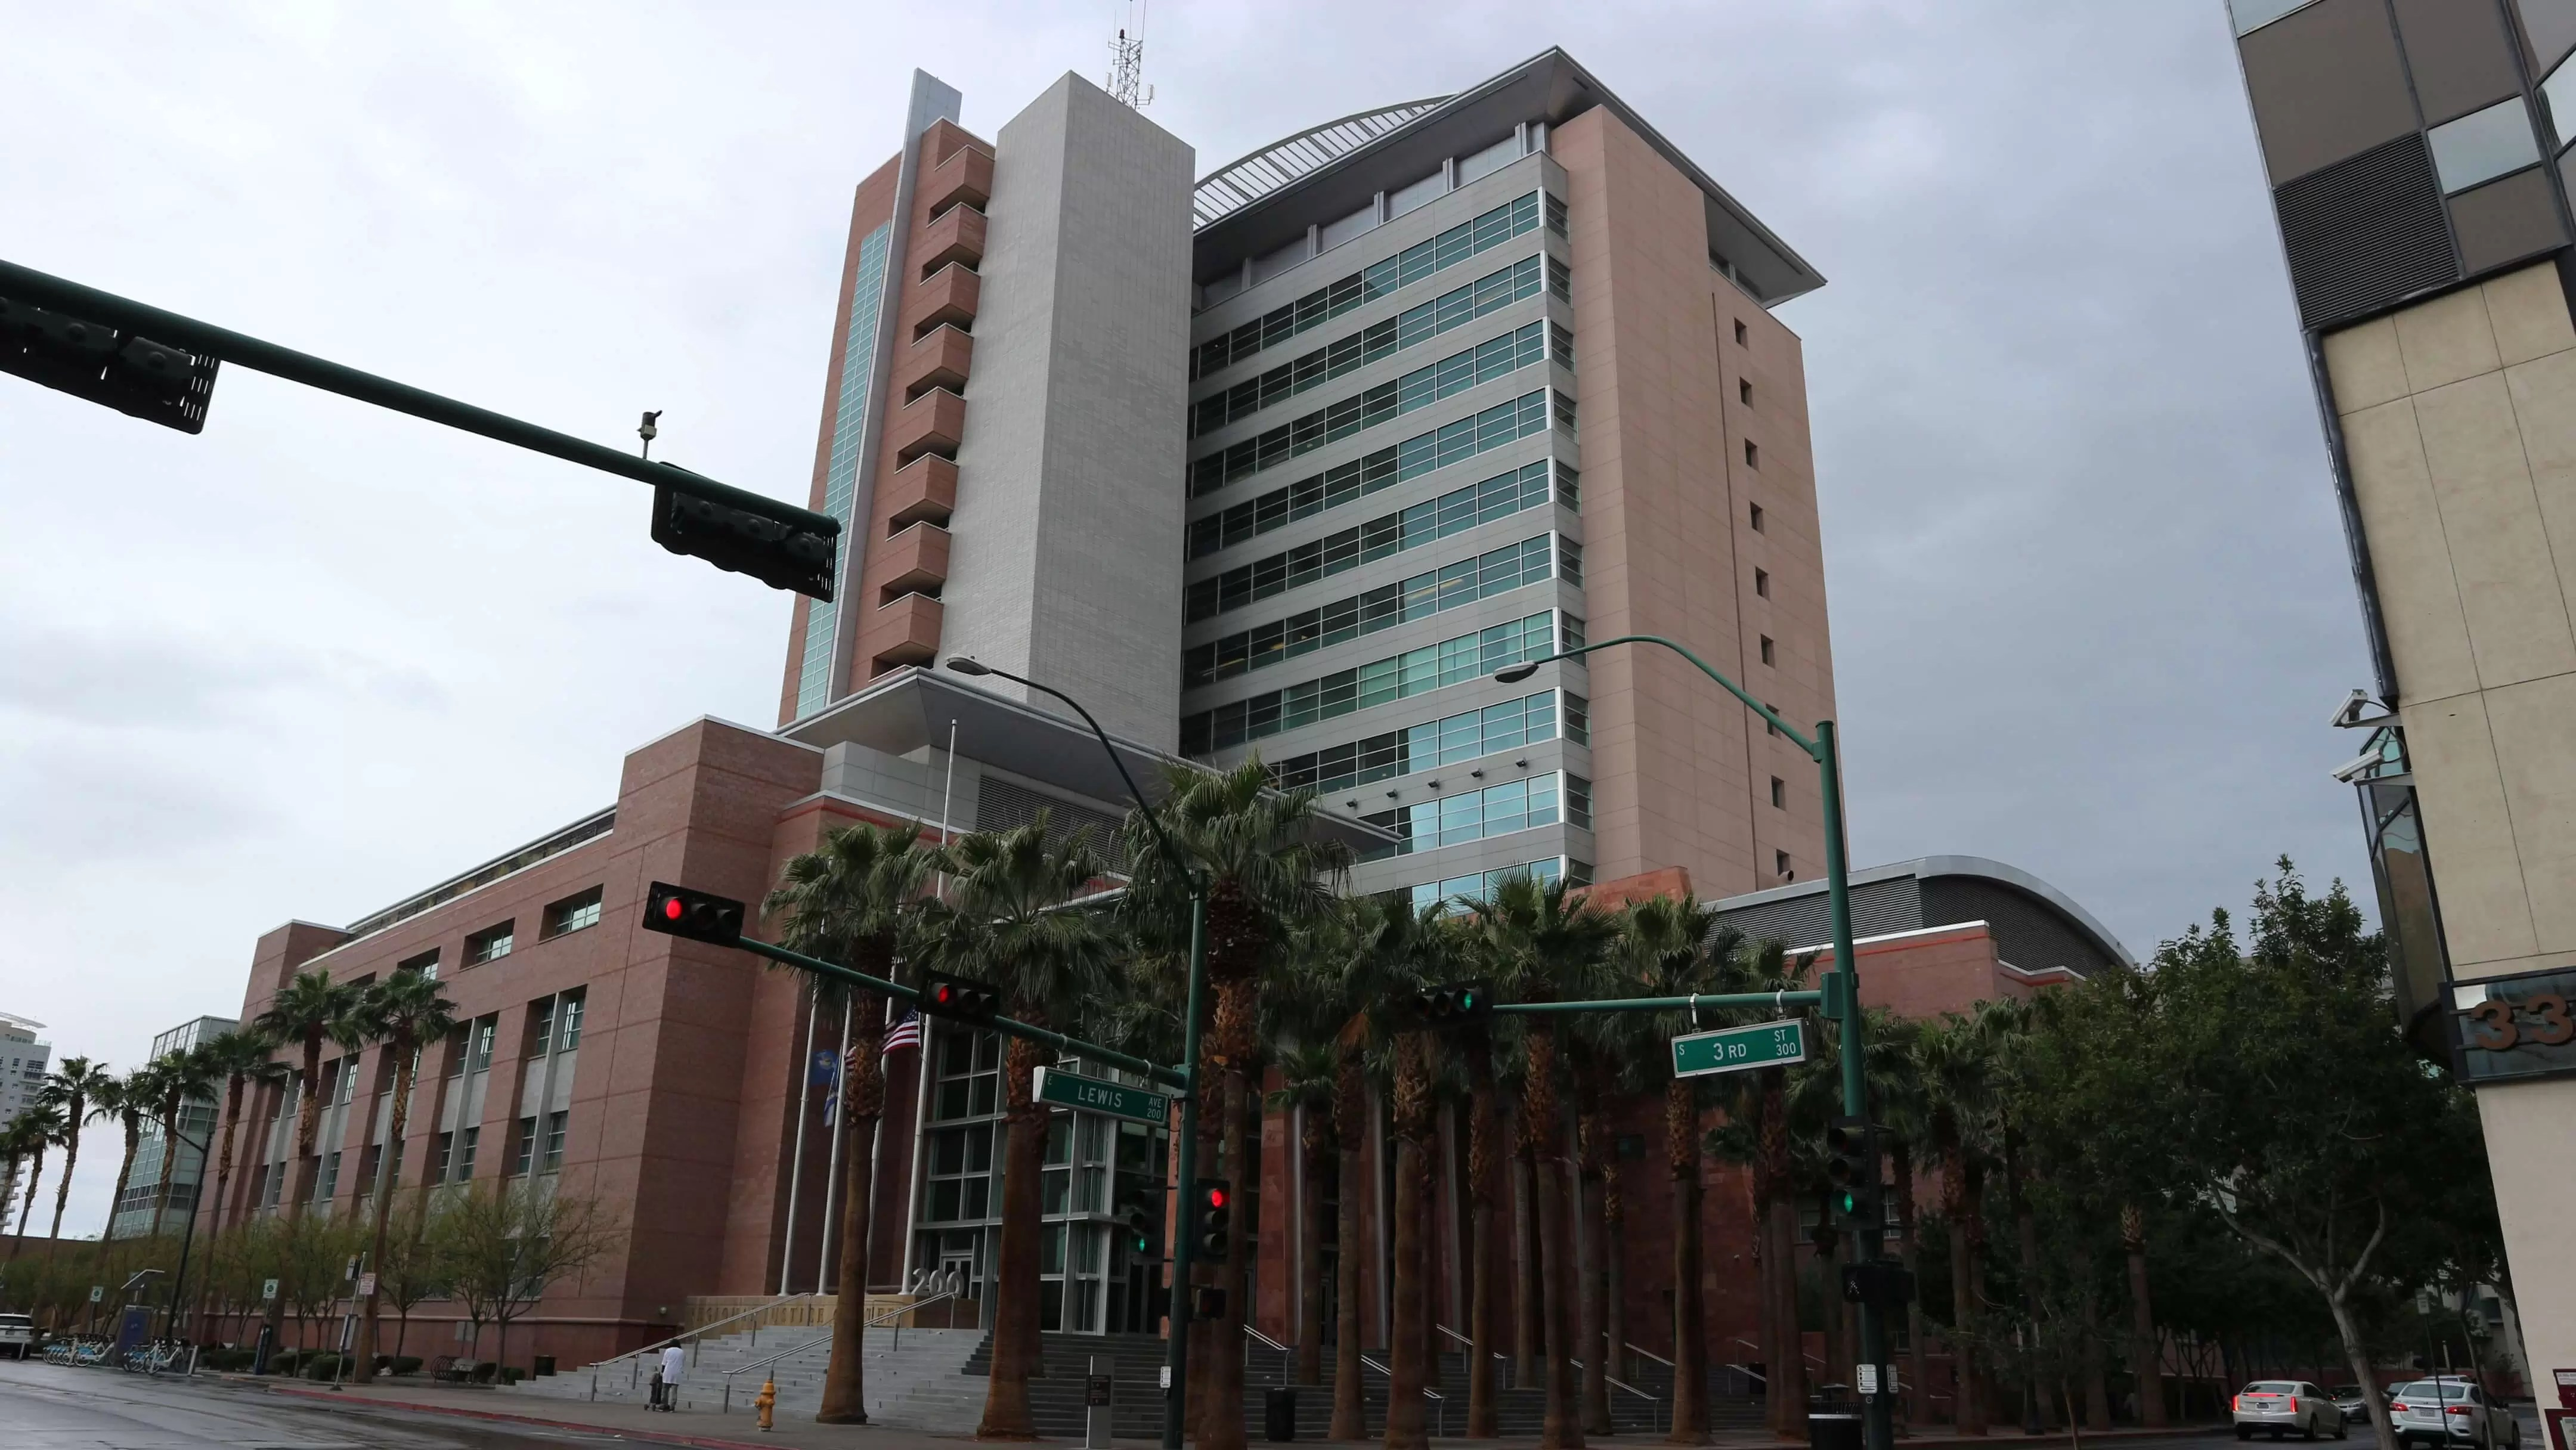 The Clark County Court System Overview